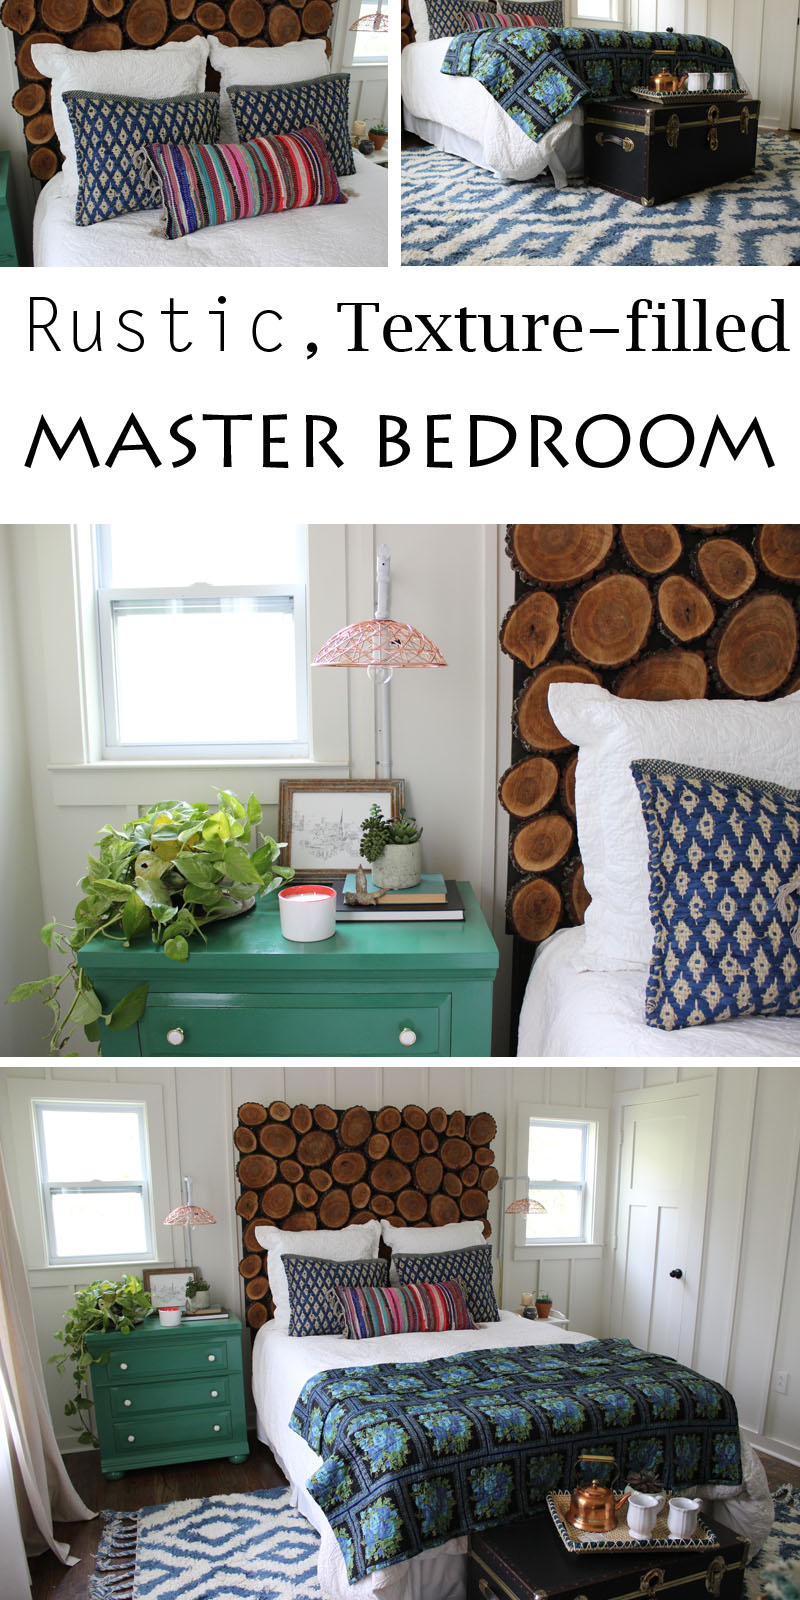 rustic-texture-filled-master